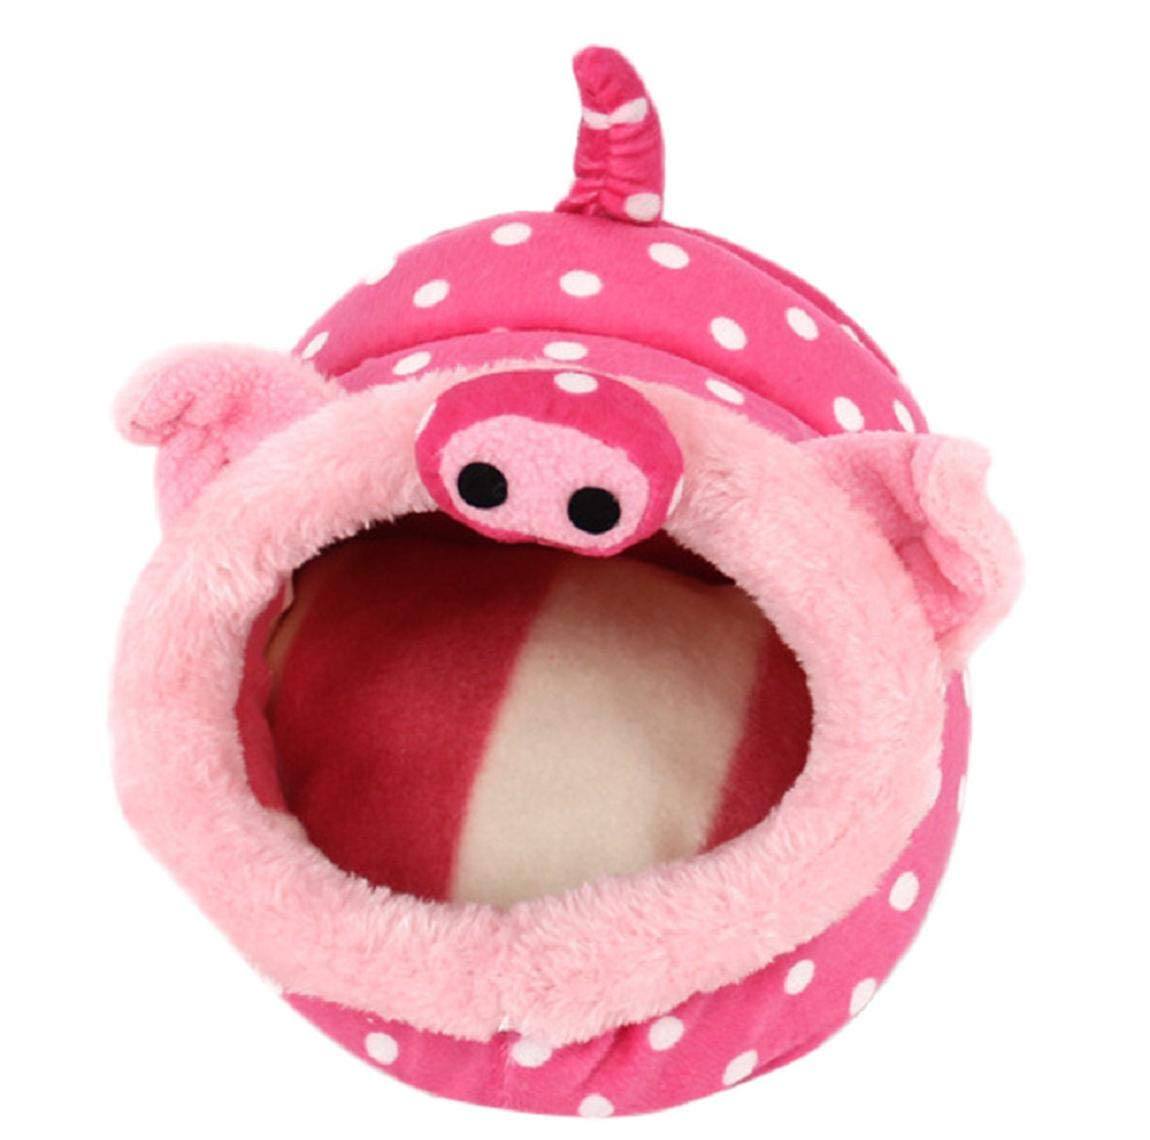 Barlingrock Pet Small Animals Beds House, Hamster Dwarfs Guinea Pig Winter Warm Nest Rat Hedgehog Cute Soft Comfortable Plush Hosue Squirrel Chinchilla Cave Cage Sleep Play Rest Cage